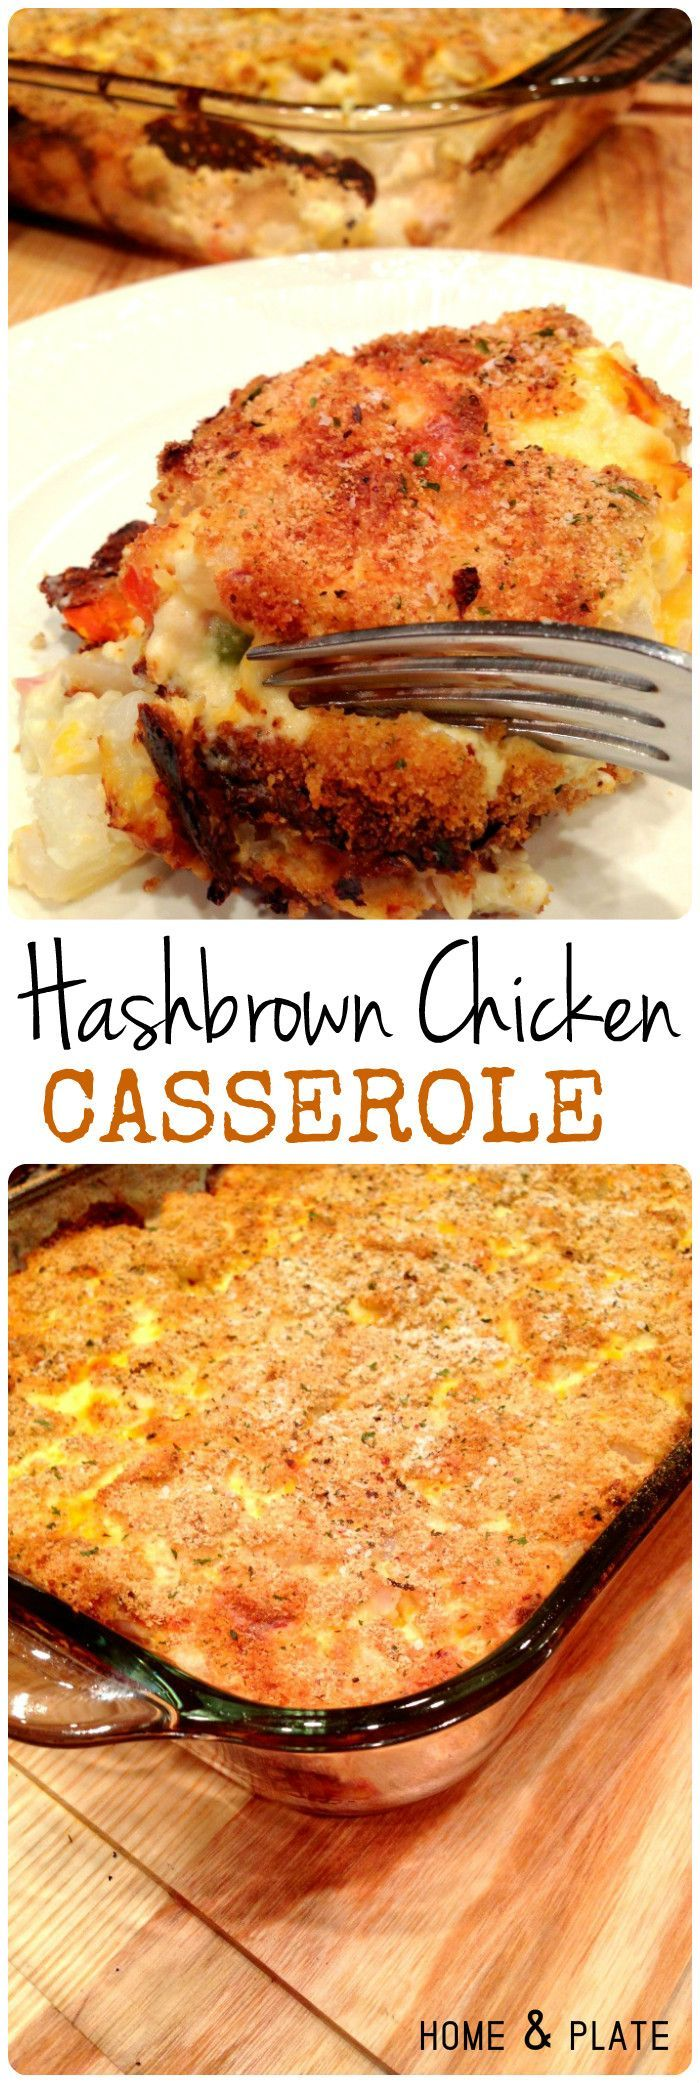 Hash Brown Chicken Casserole | www.homeandplate.com | Hash Brown Chicken Casserole has tender bits of roasted chicken breast, hash brown potatoes, shredded cheddar cheese and your favorite mixed vegetables.